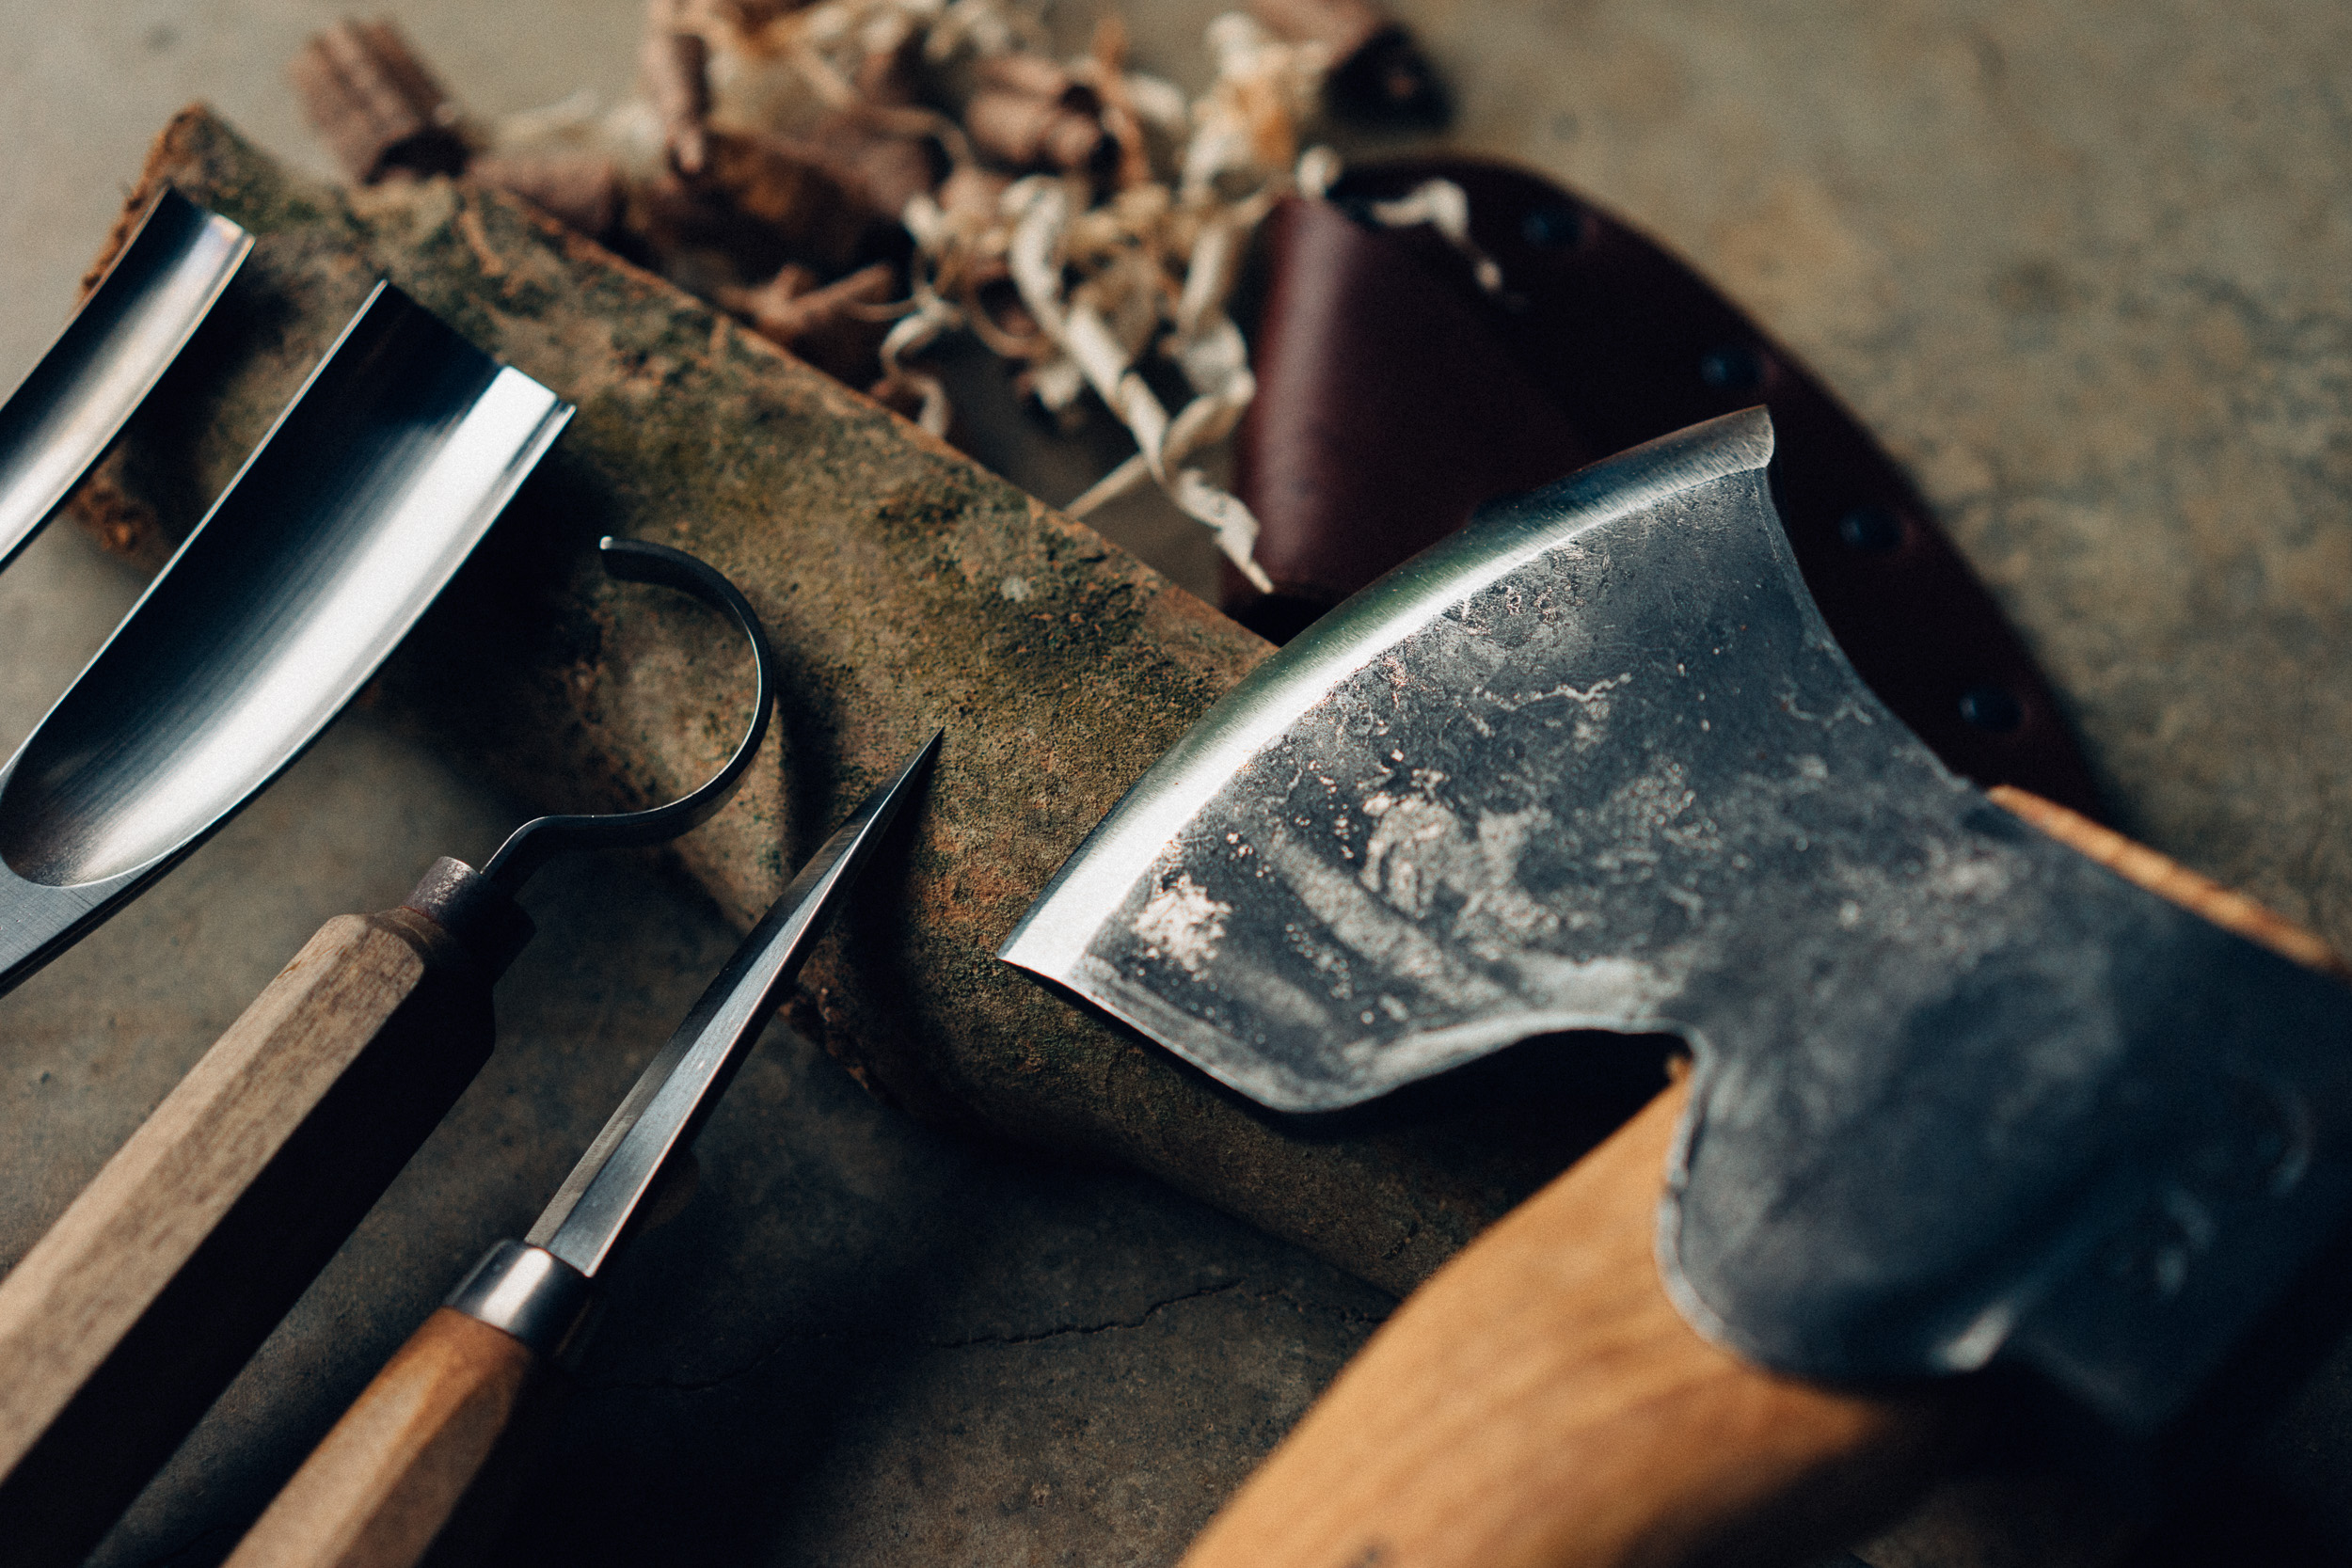 Tools of the trade. A sharp blade is everything.